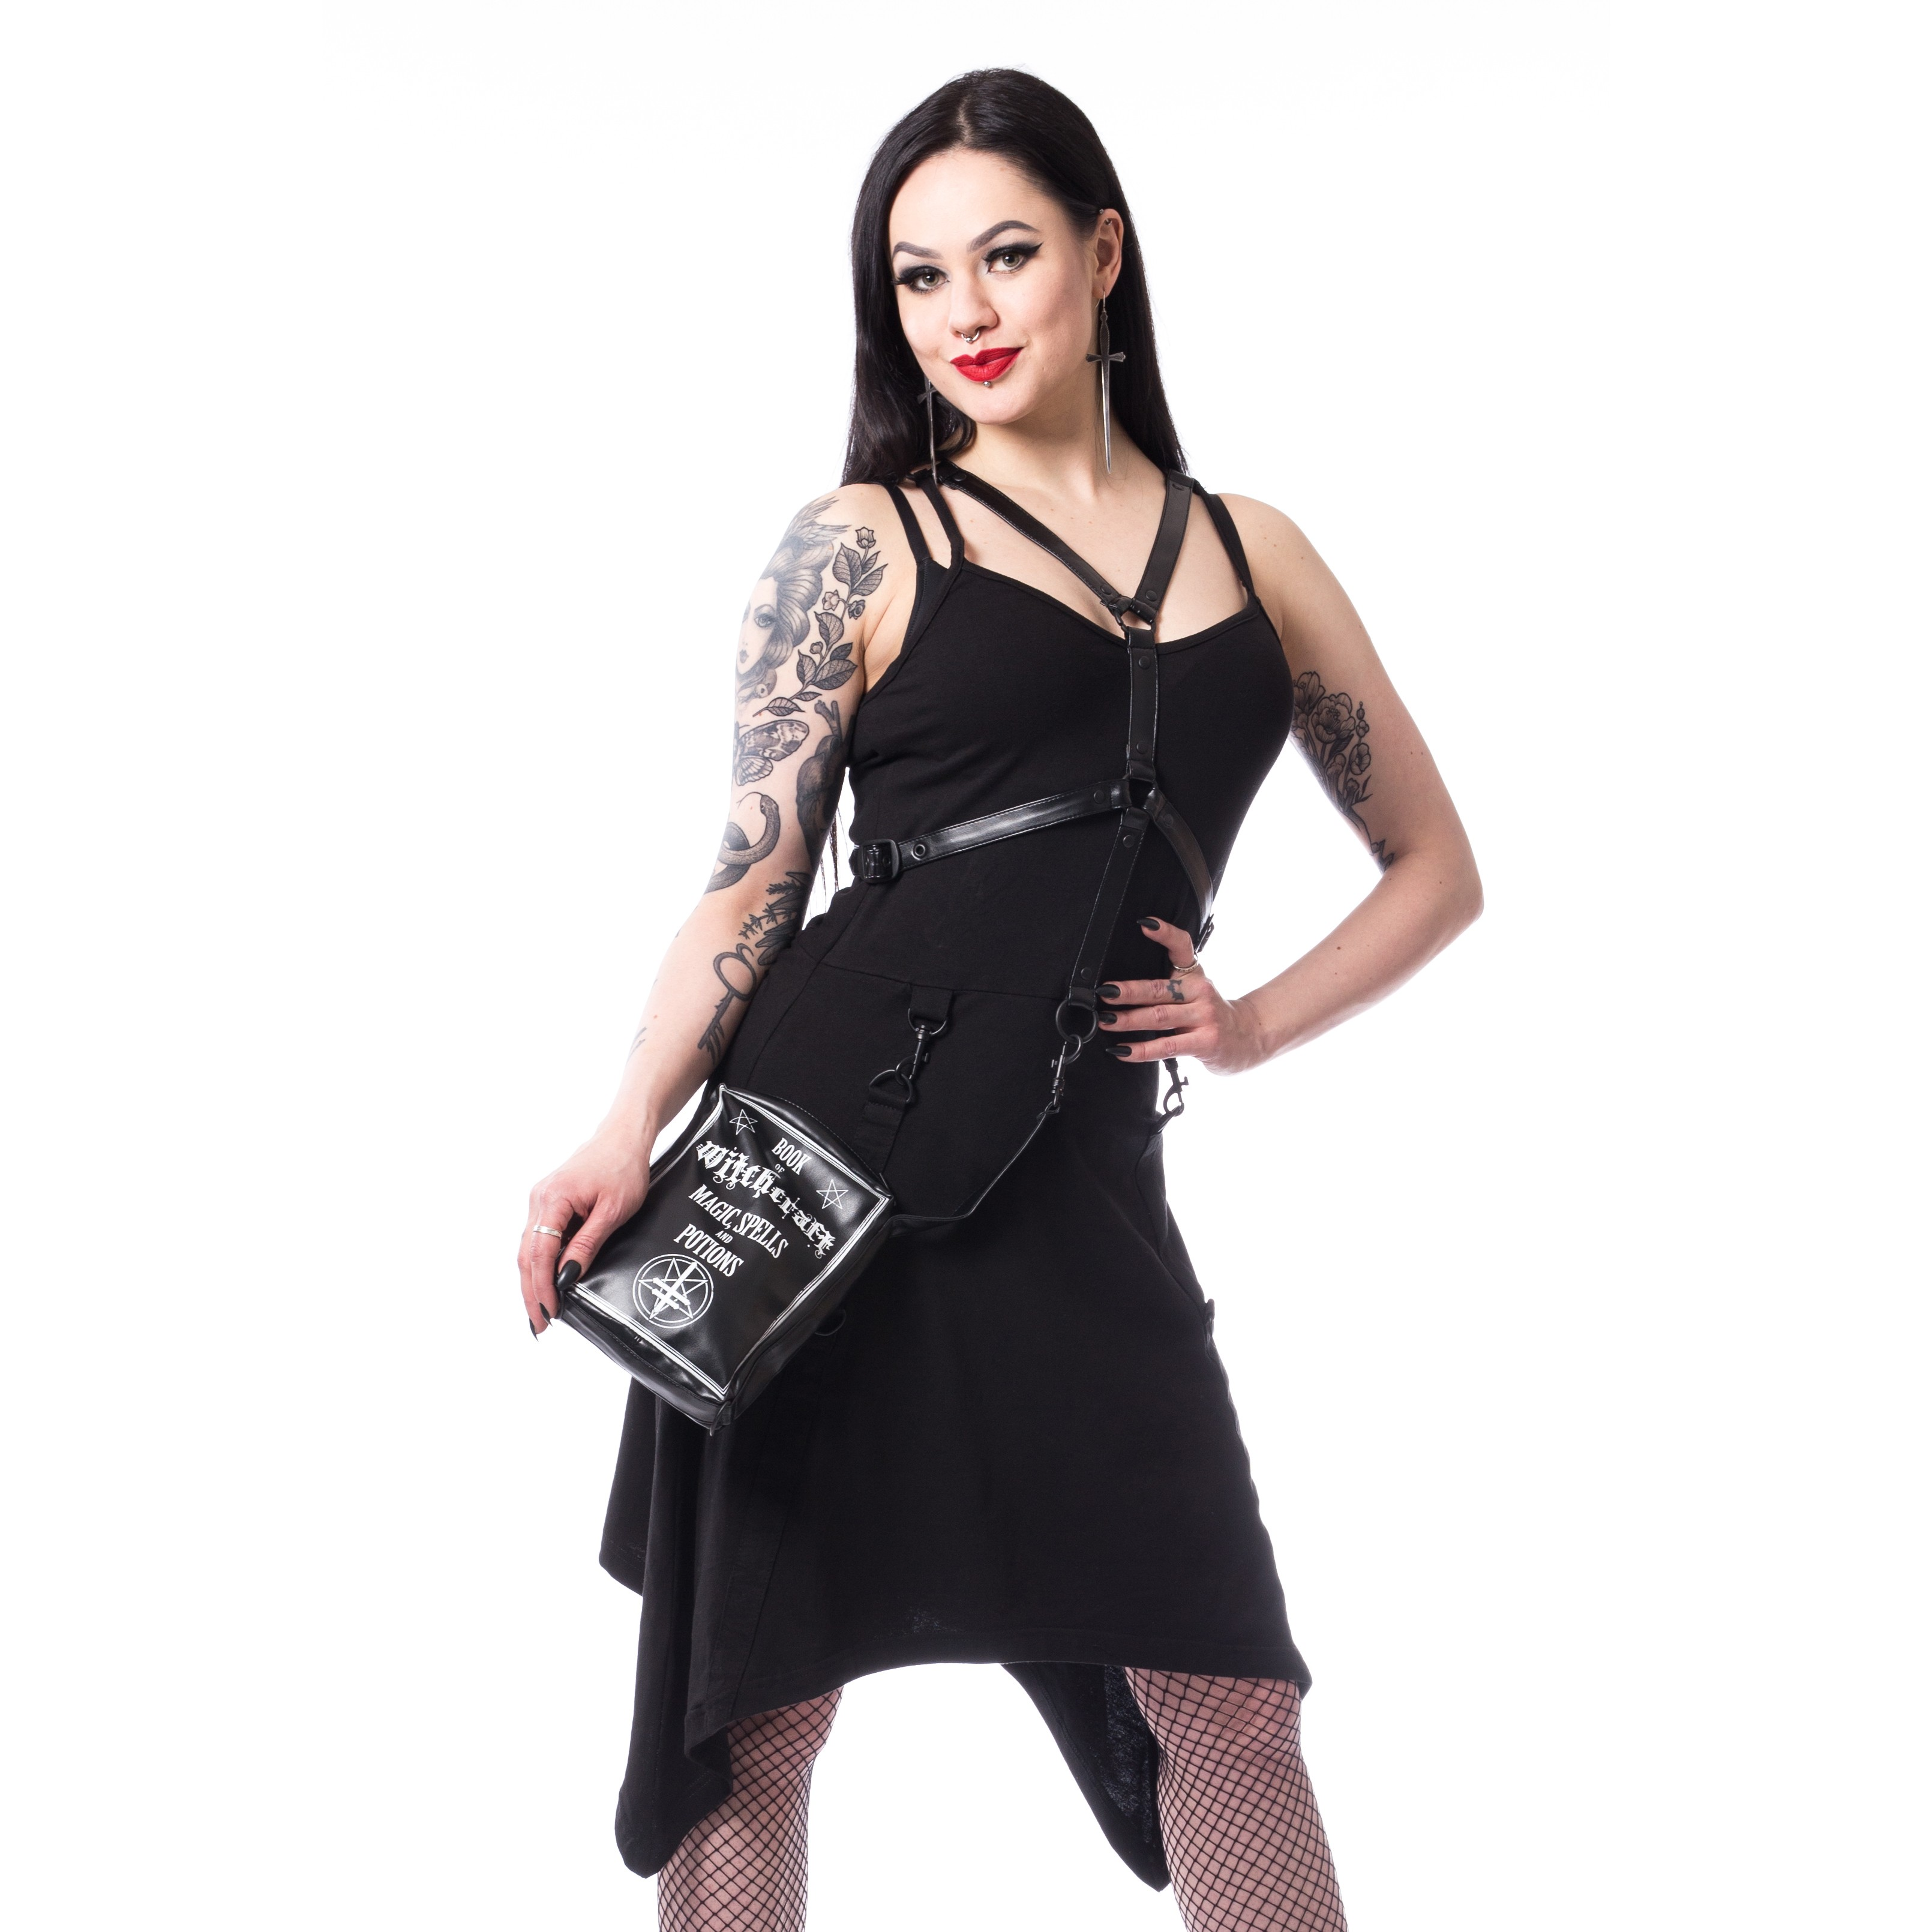 HEARTLESS - Riina Dress Ladies Black *NEW IN-a*